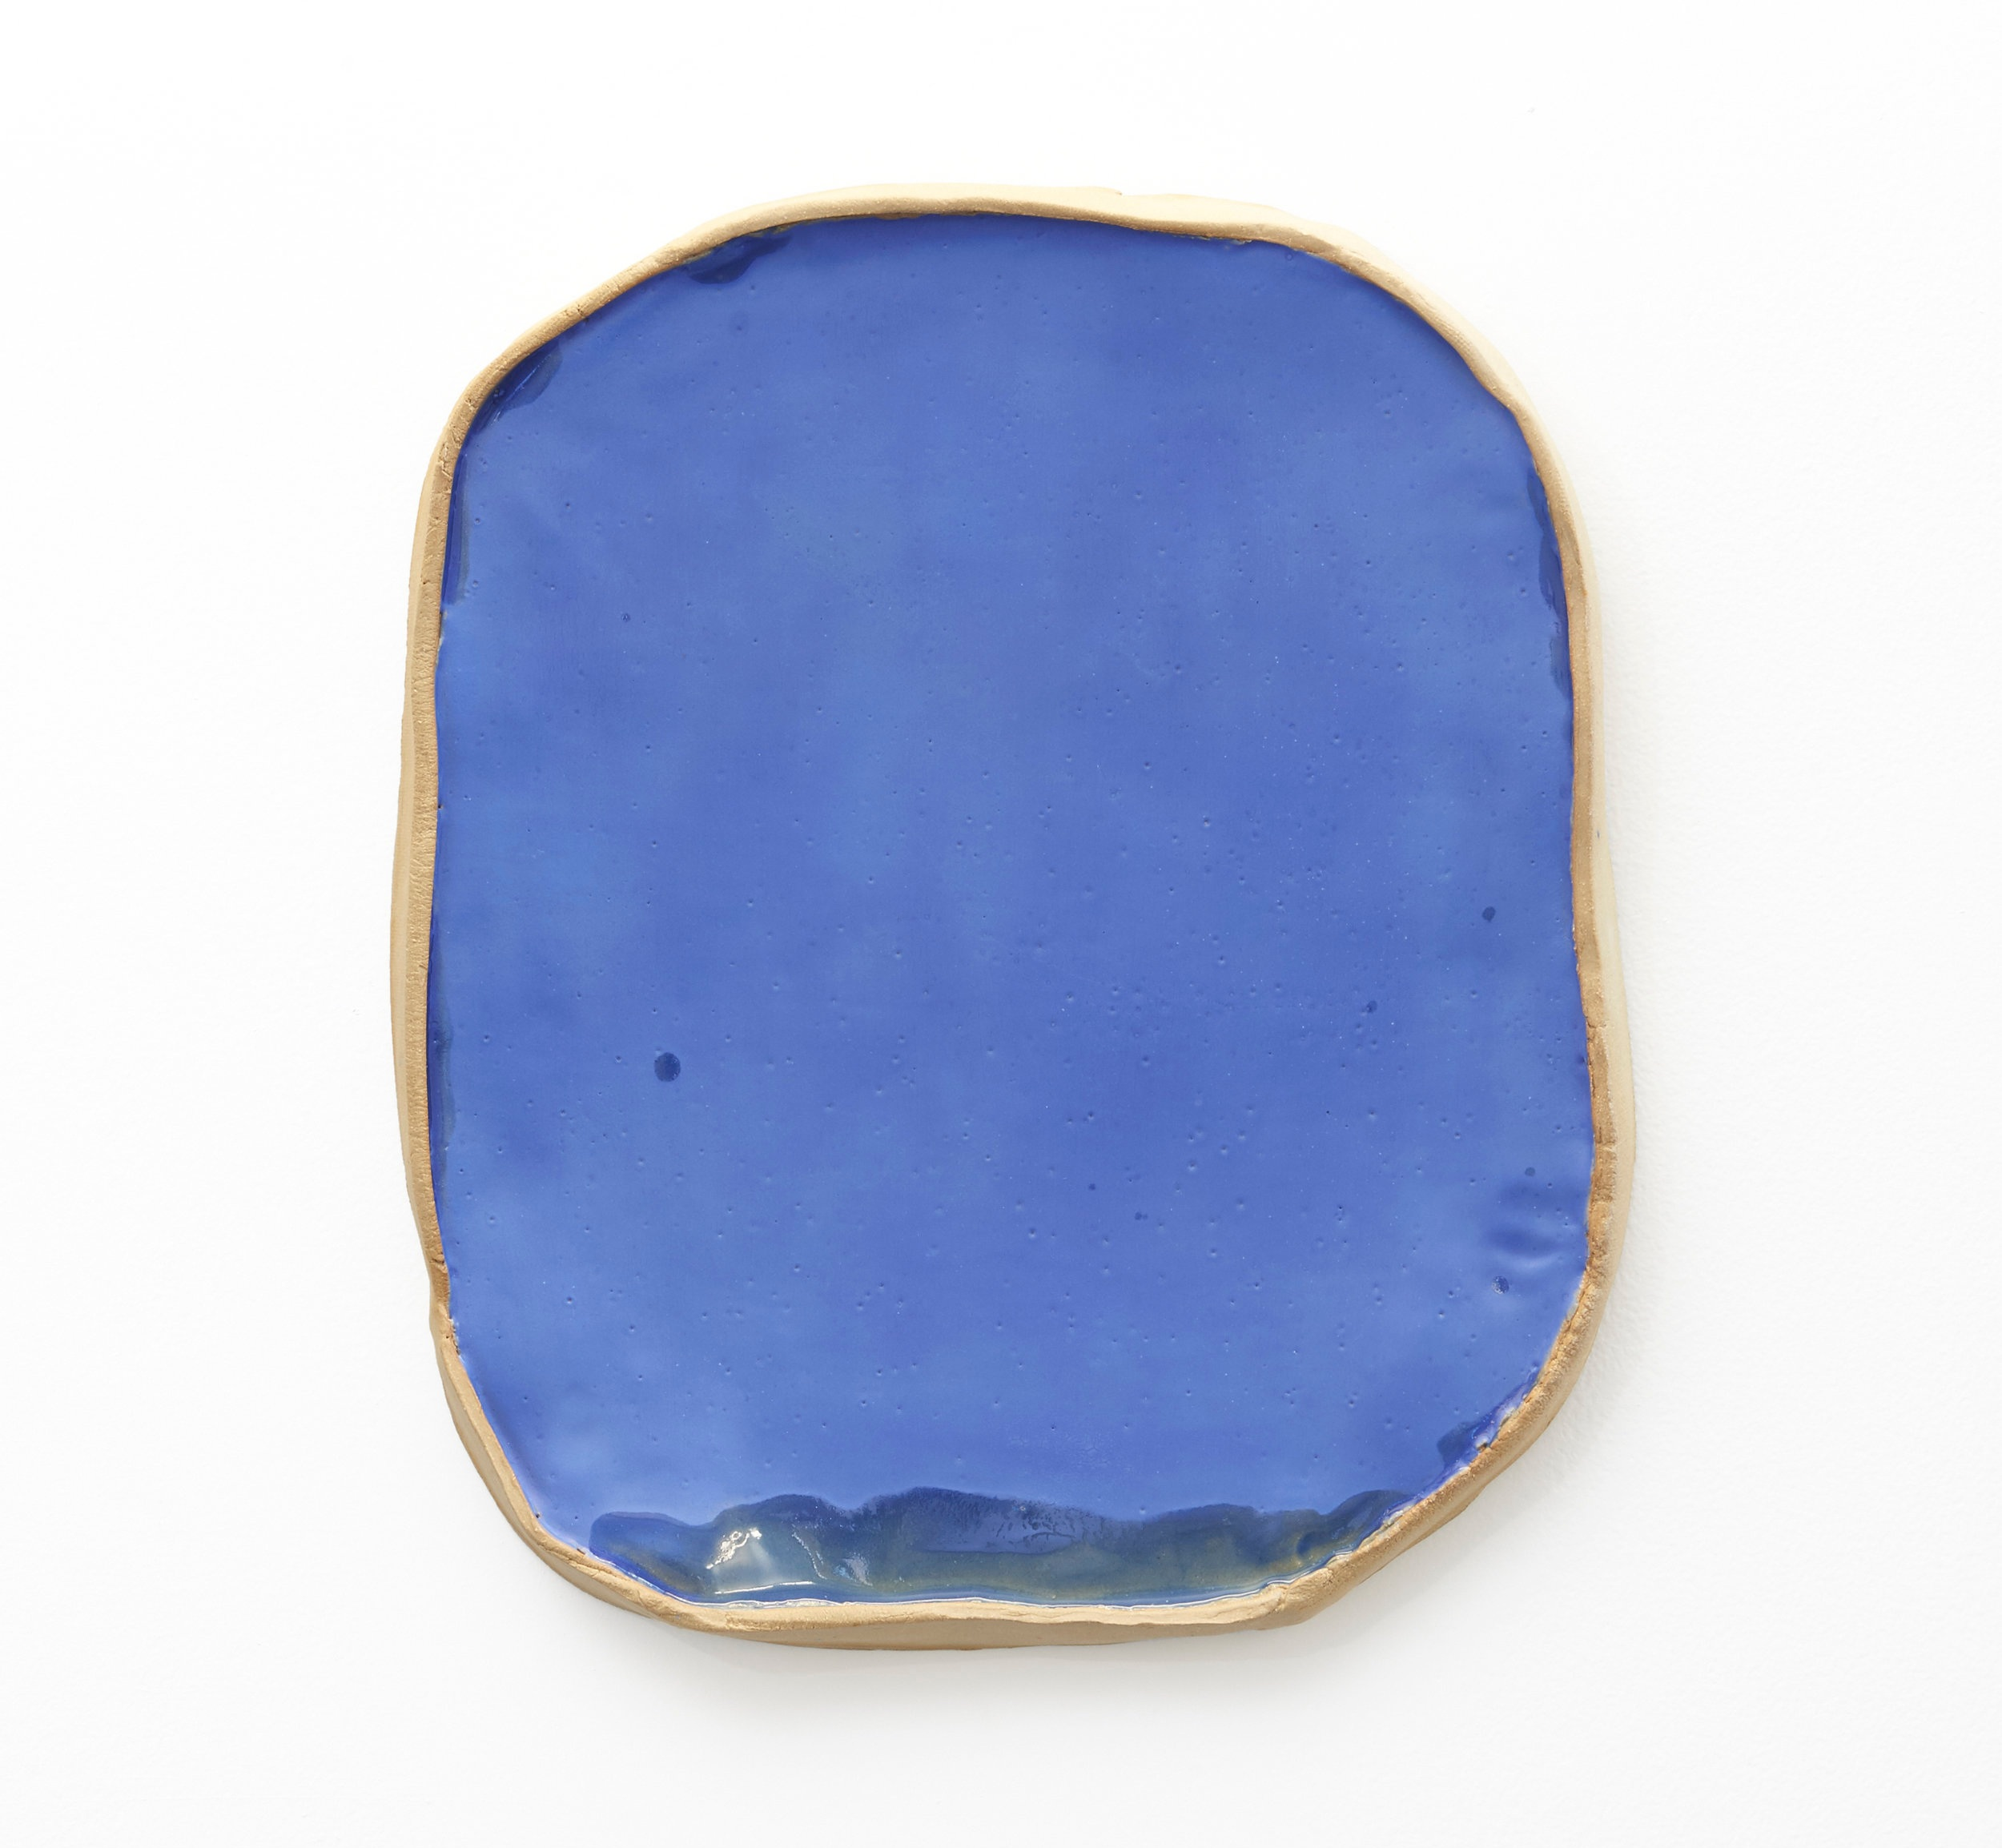 Keiko Narahashi,    Untitled (Blue Mirror) , 2018, Glazed stoneware, 16 x 13 3/4 x 1 1/2 inches